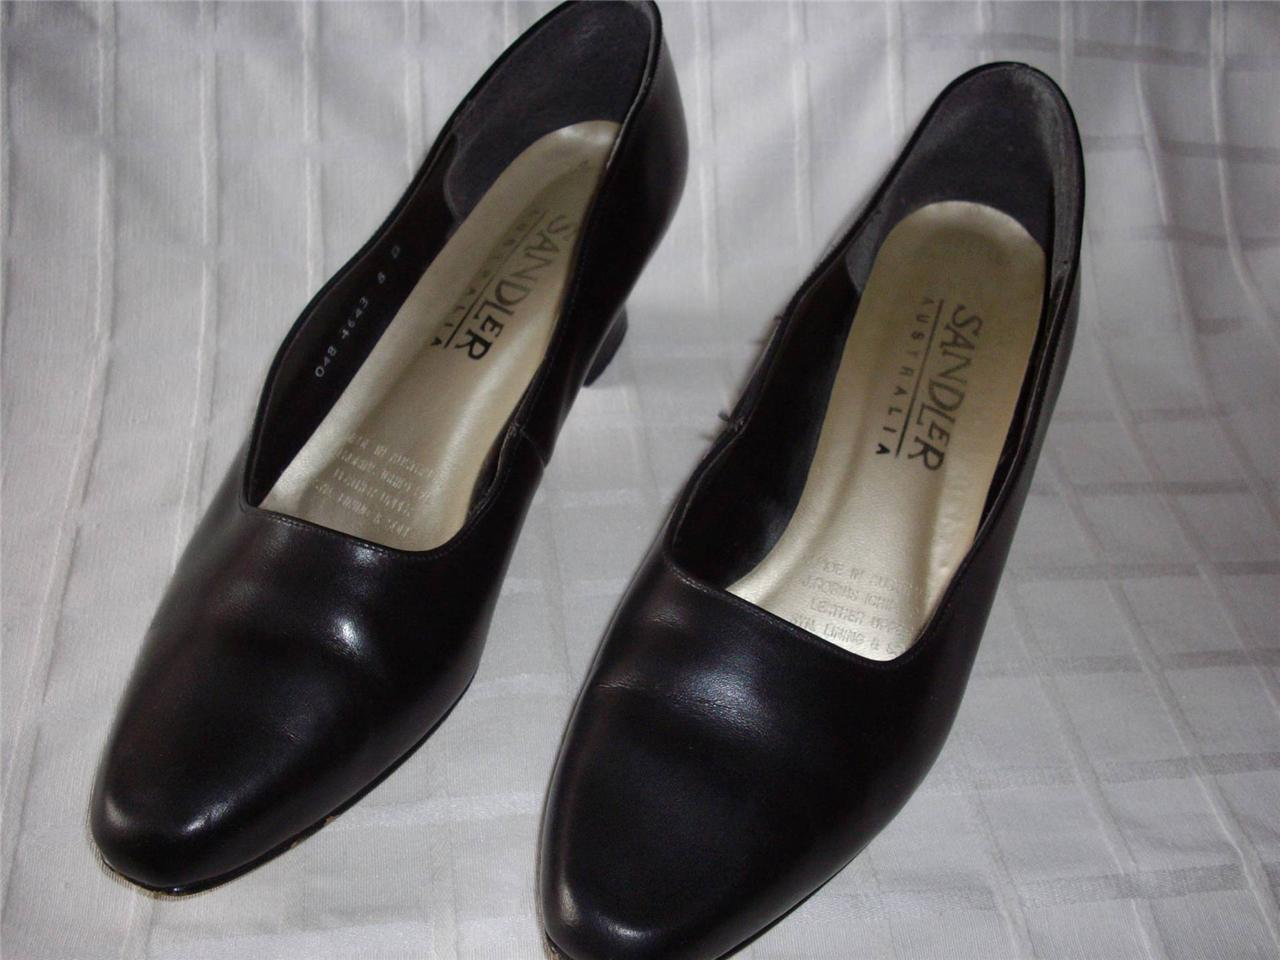 SANDLER-LADIES-LEATHER-COURT-SHOES-WITH-HEELS-BLACK-SIZE-8-VERY-GOOD